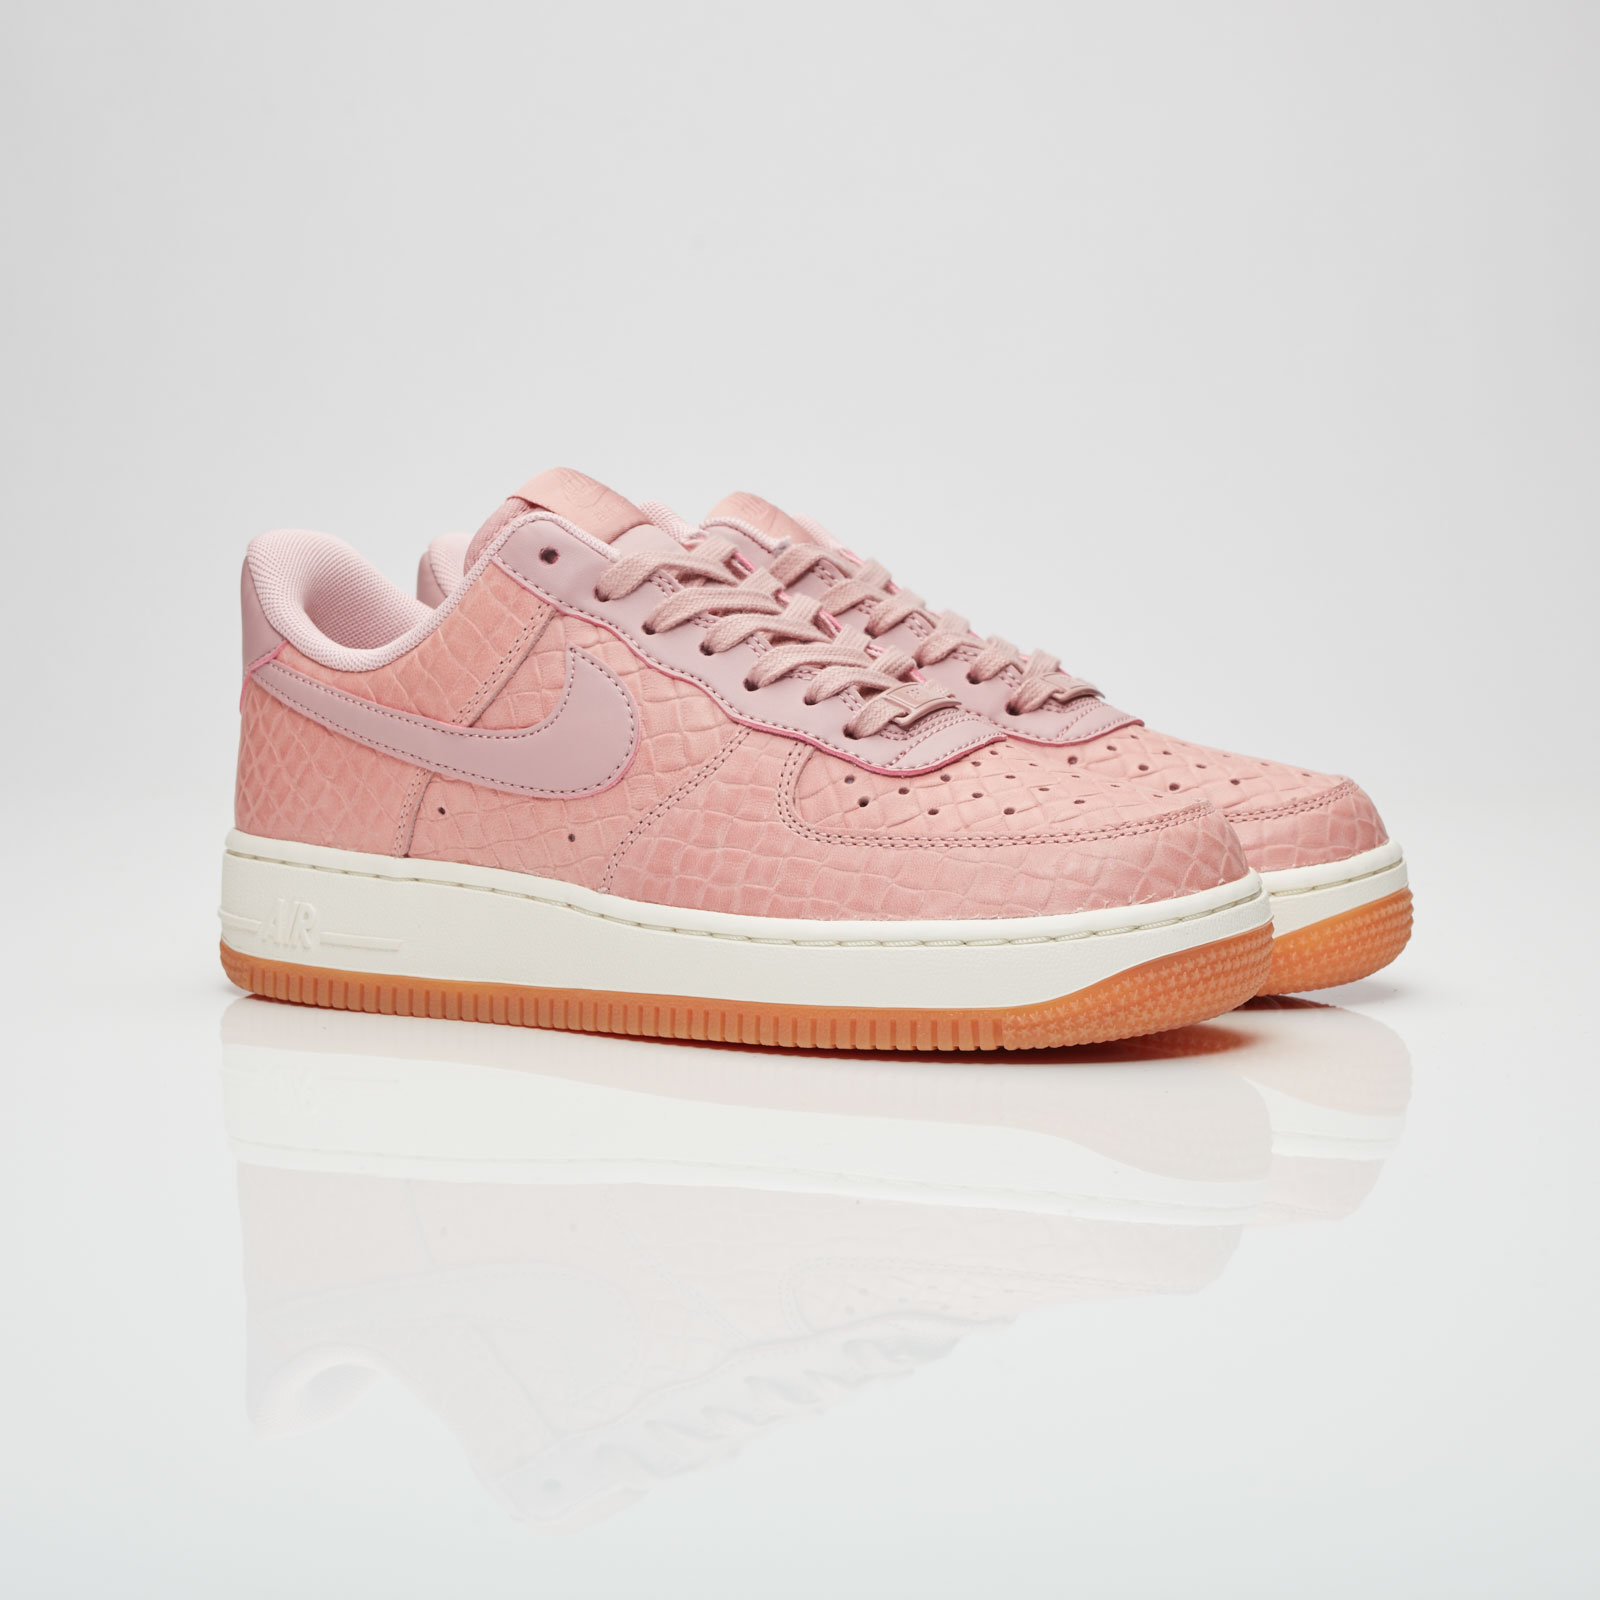 Nike Womens Air Force 1 Pink Glaze - Air 23 - Air Jordan Release ... a5c1b9edd